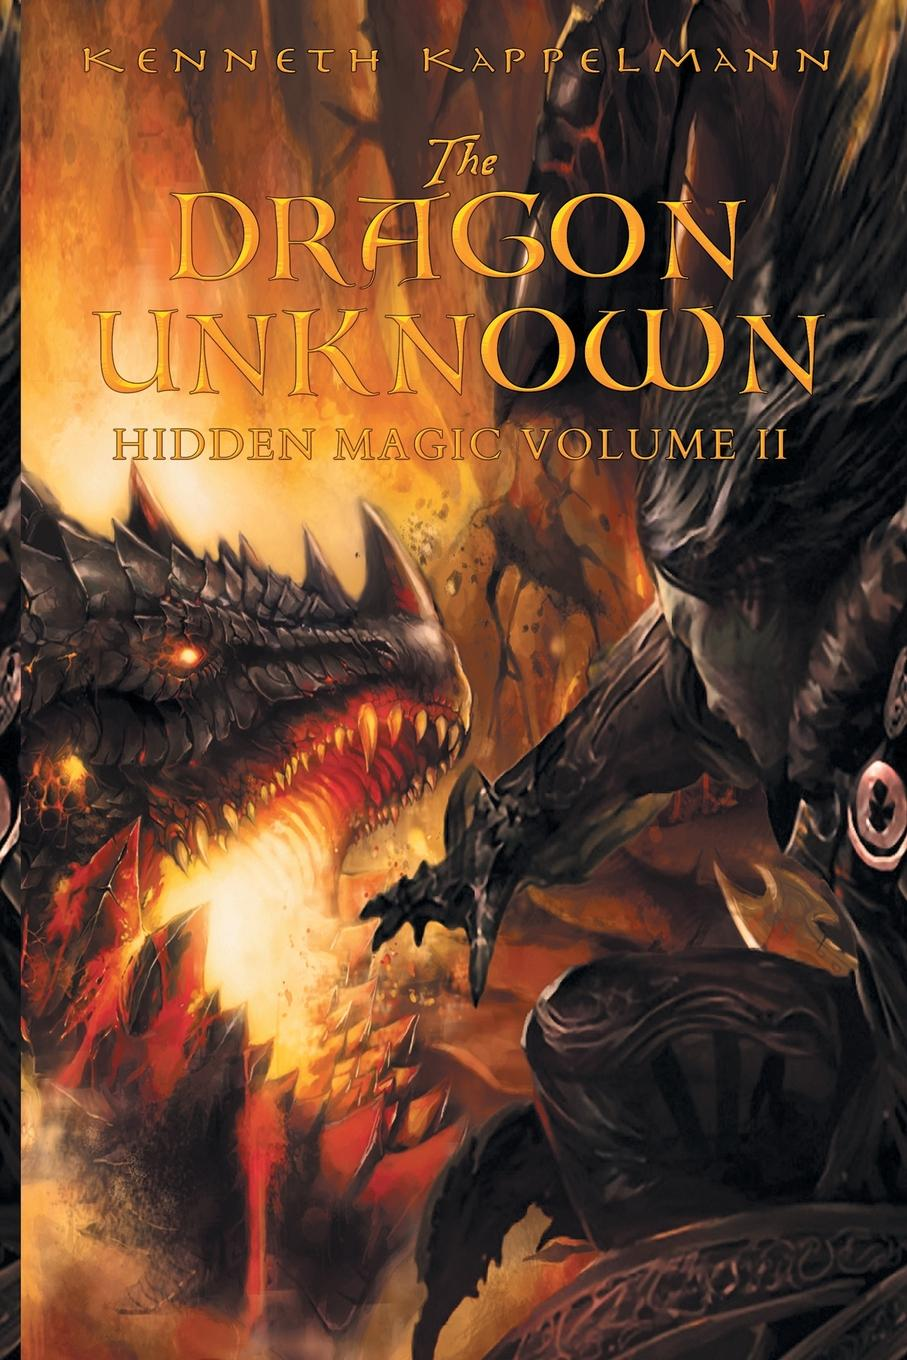 Фото - Kenneth Kappelmann The Dragon Unknown. Hidden Magic Volume II monica langley tearing down the walls how sandy weill fought his way to the top of the financial world and then nearly lost it all